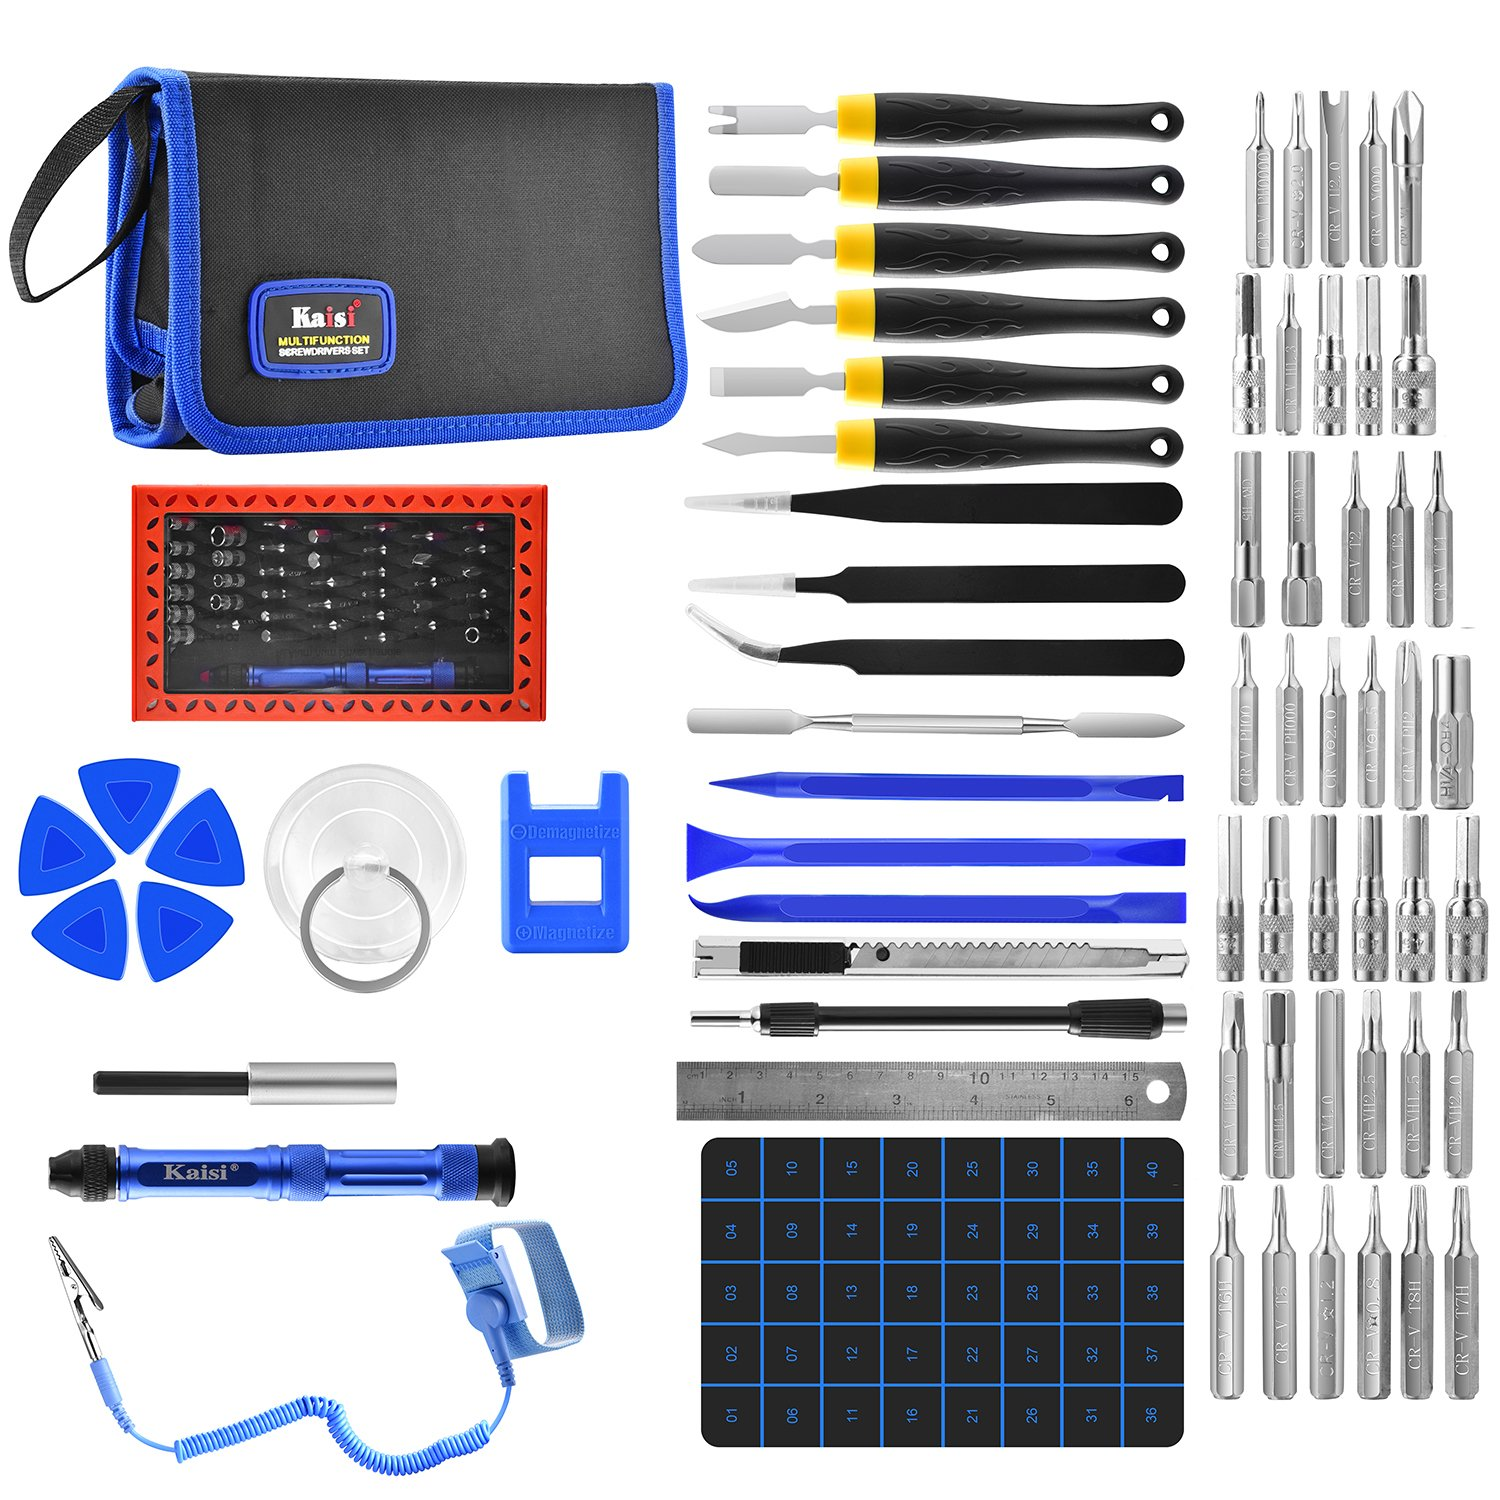 Kaisi 67 in 1 Precision Screwdriver Set with Magnetic Driver Kit, Professional Electronics Repair Tools Kit with Portable Bag for Repair Cell Phone, iPad, iPod, MacBook, Laptops, Computer and More by Kaisi